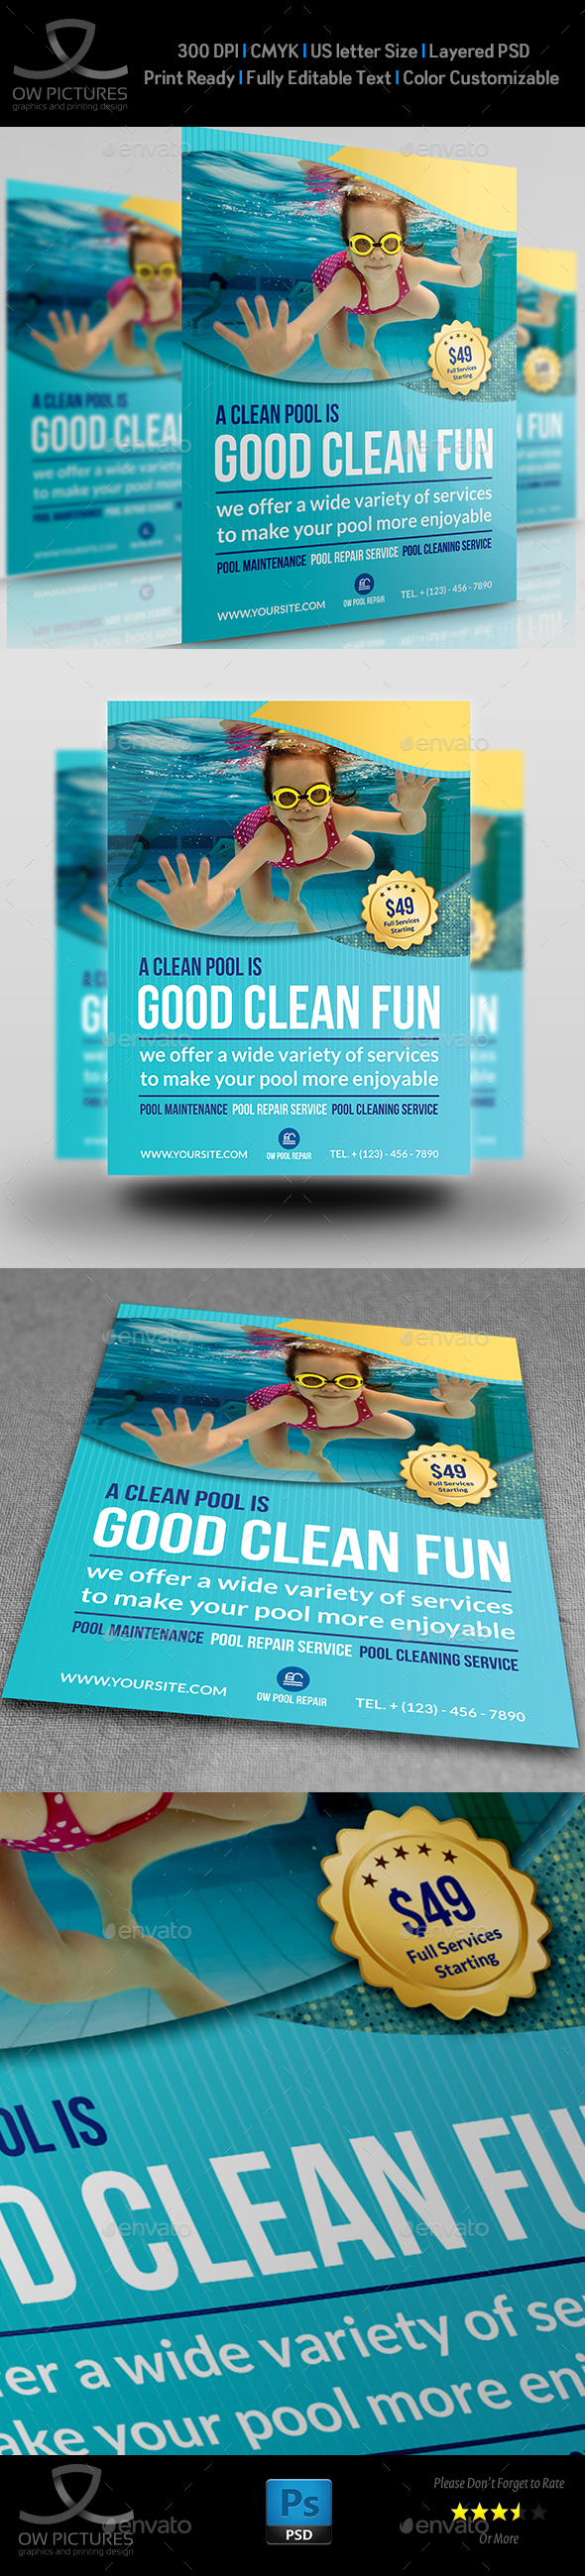 Swimming Pool Cleaning Service Flyer Template Flyers